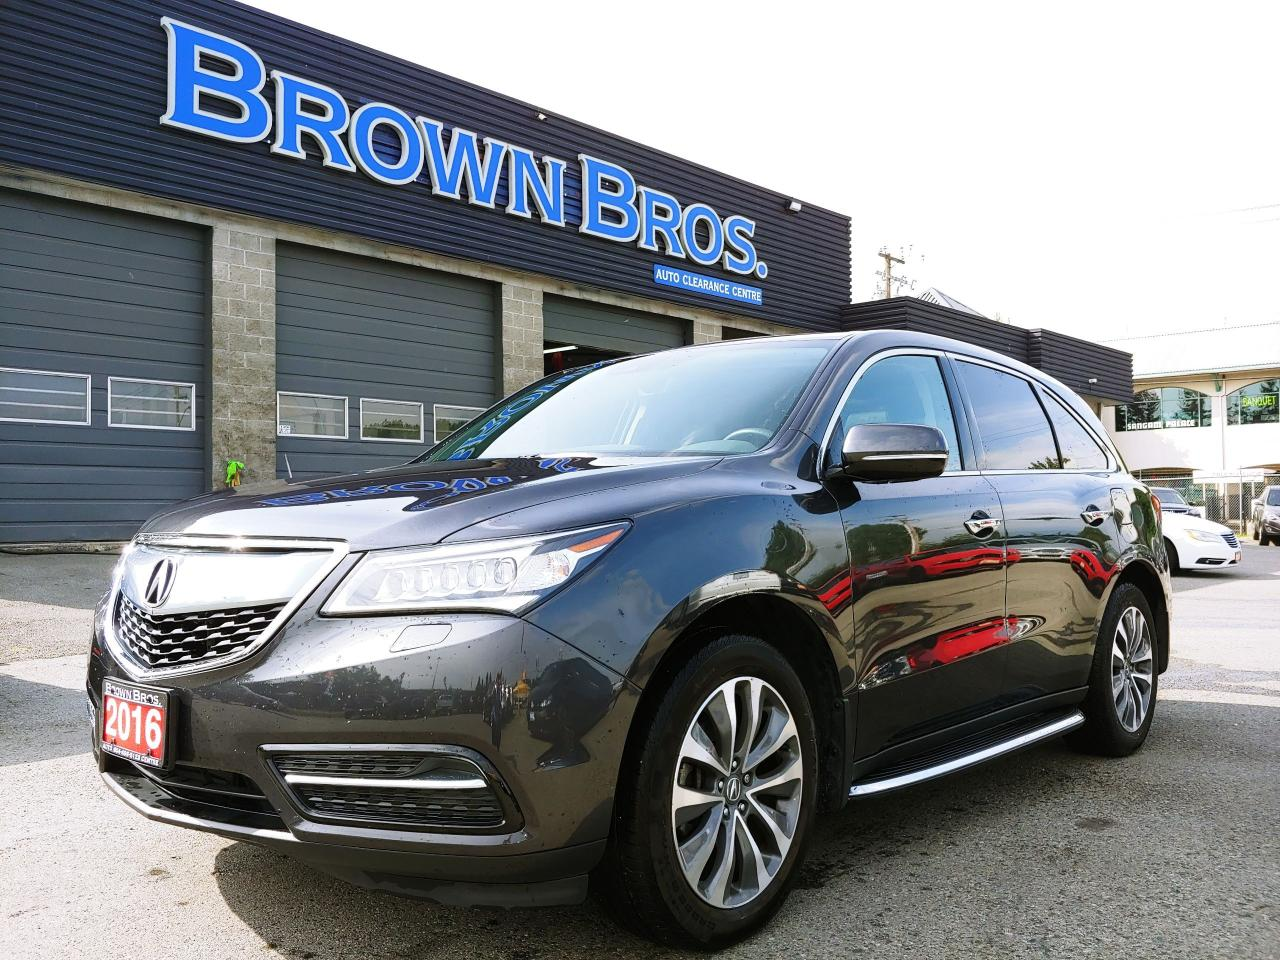 Mdx Cash Back >> 2016 Acura Mdx Brown Bros Auto Clearance Centre